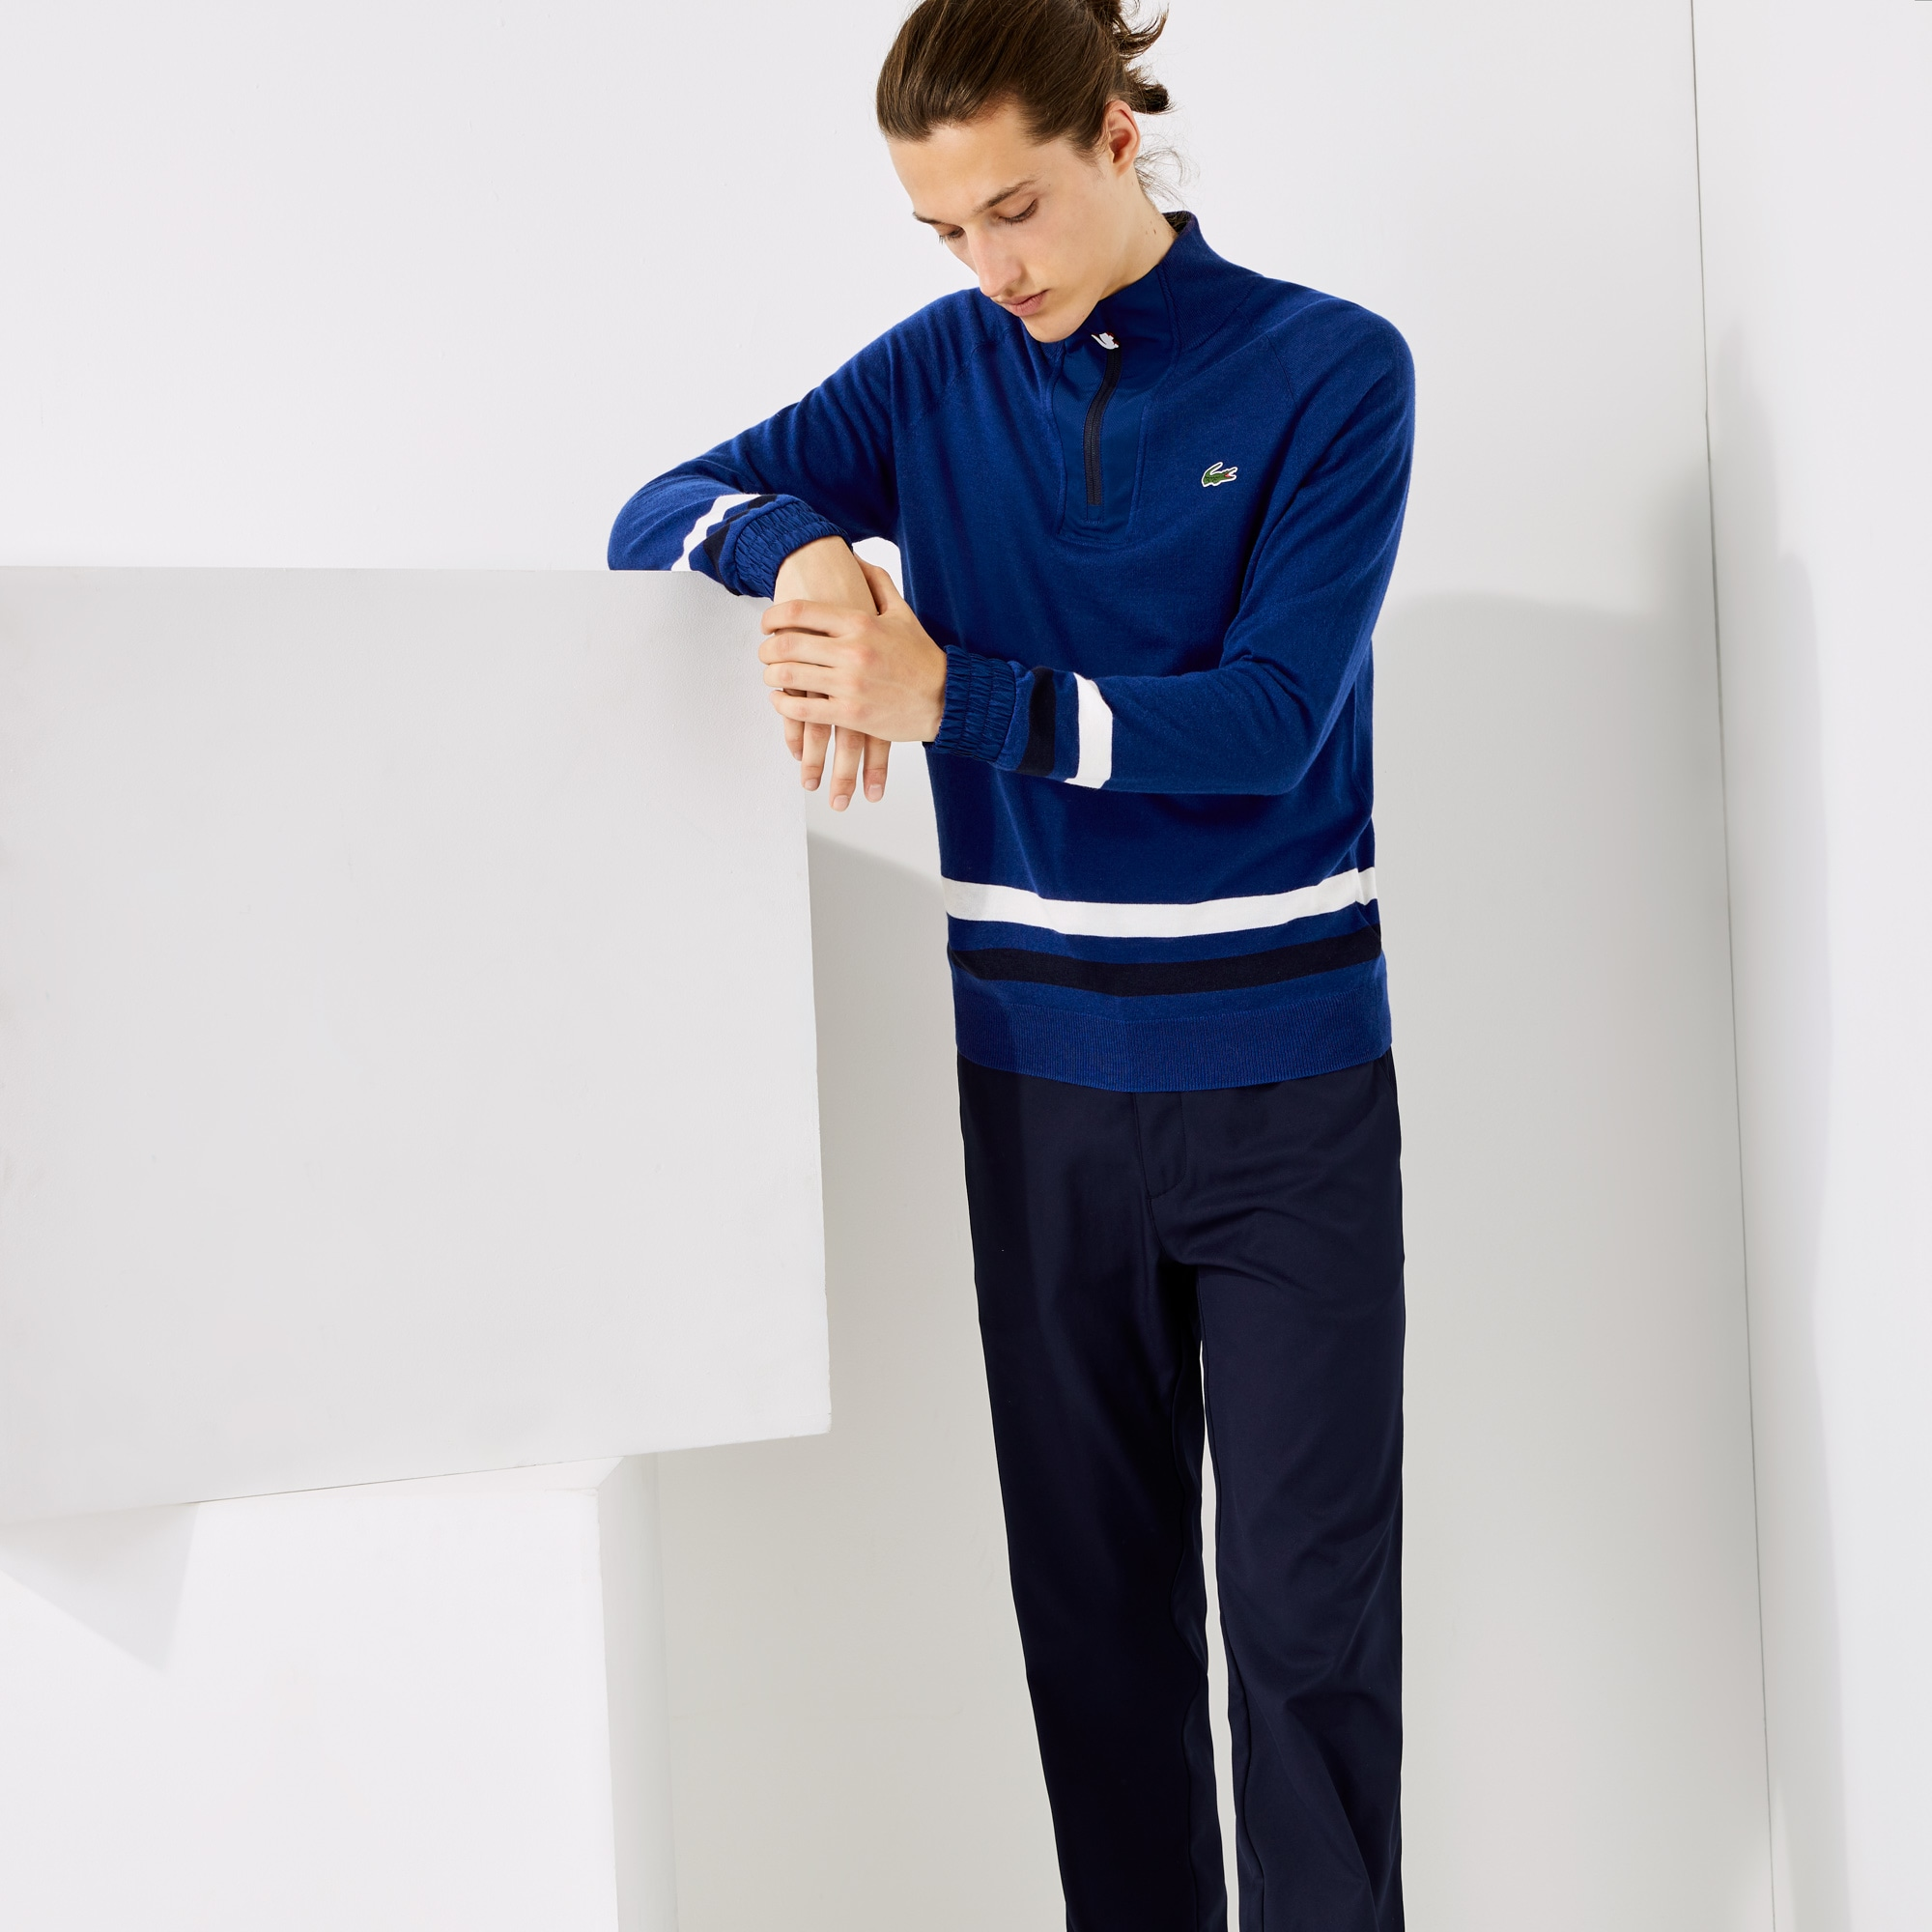 라코스테 스포츠 골프 스웨터 Mens Lacoste SPORT Breathable Wool Golf Sweater,Blue / Navy Blue / White • D9A